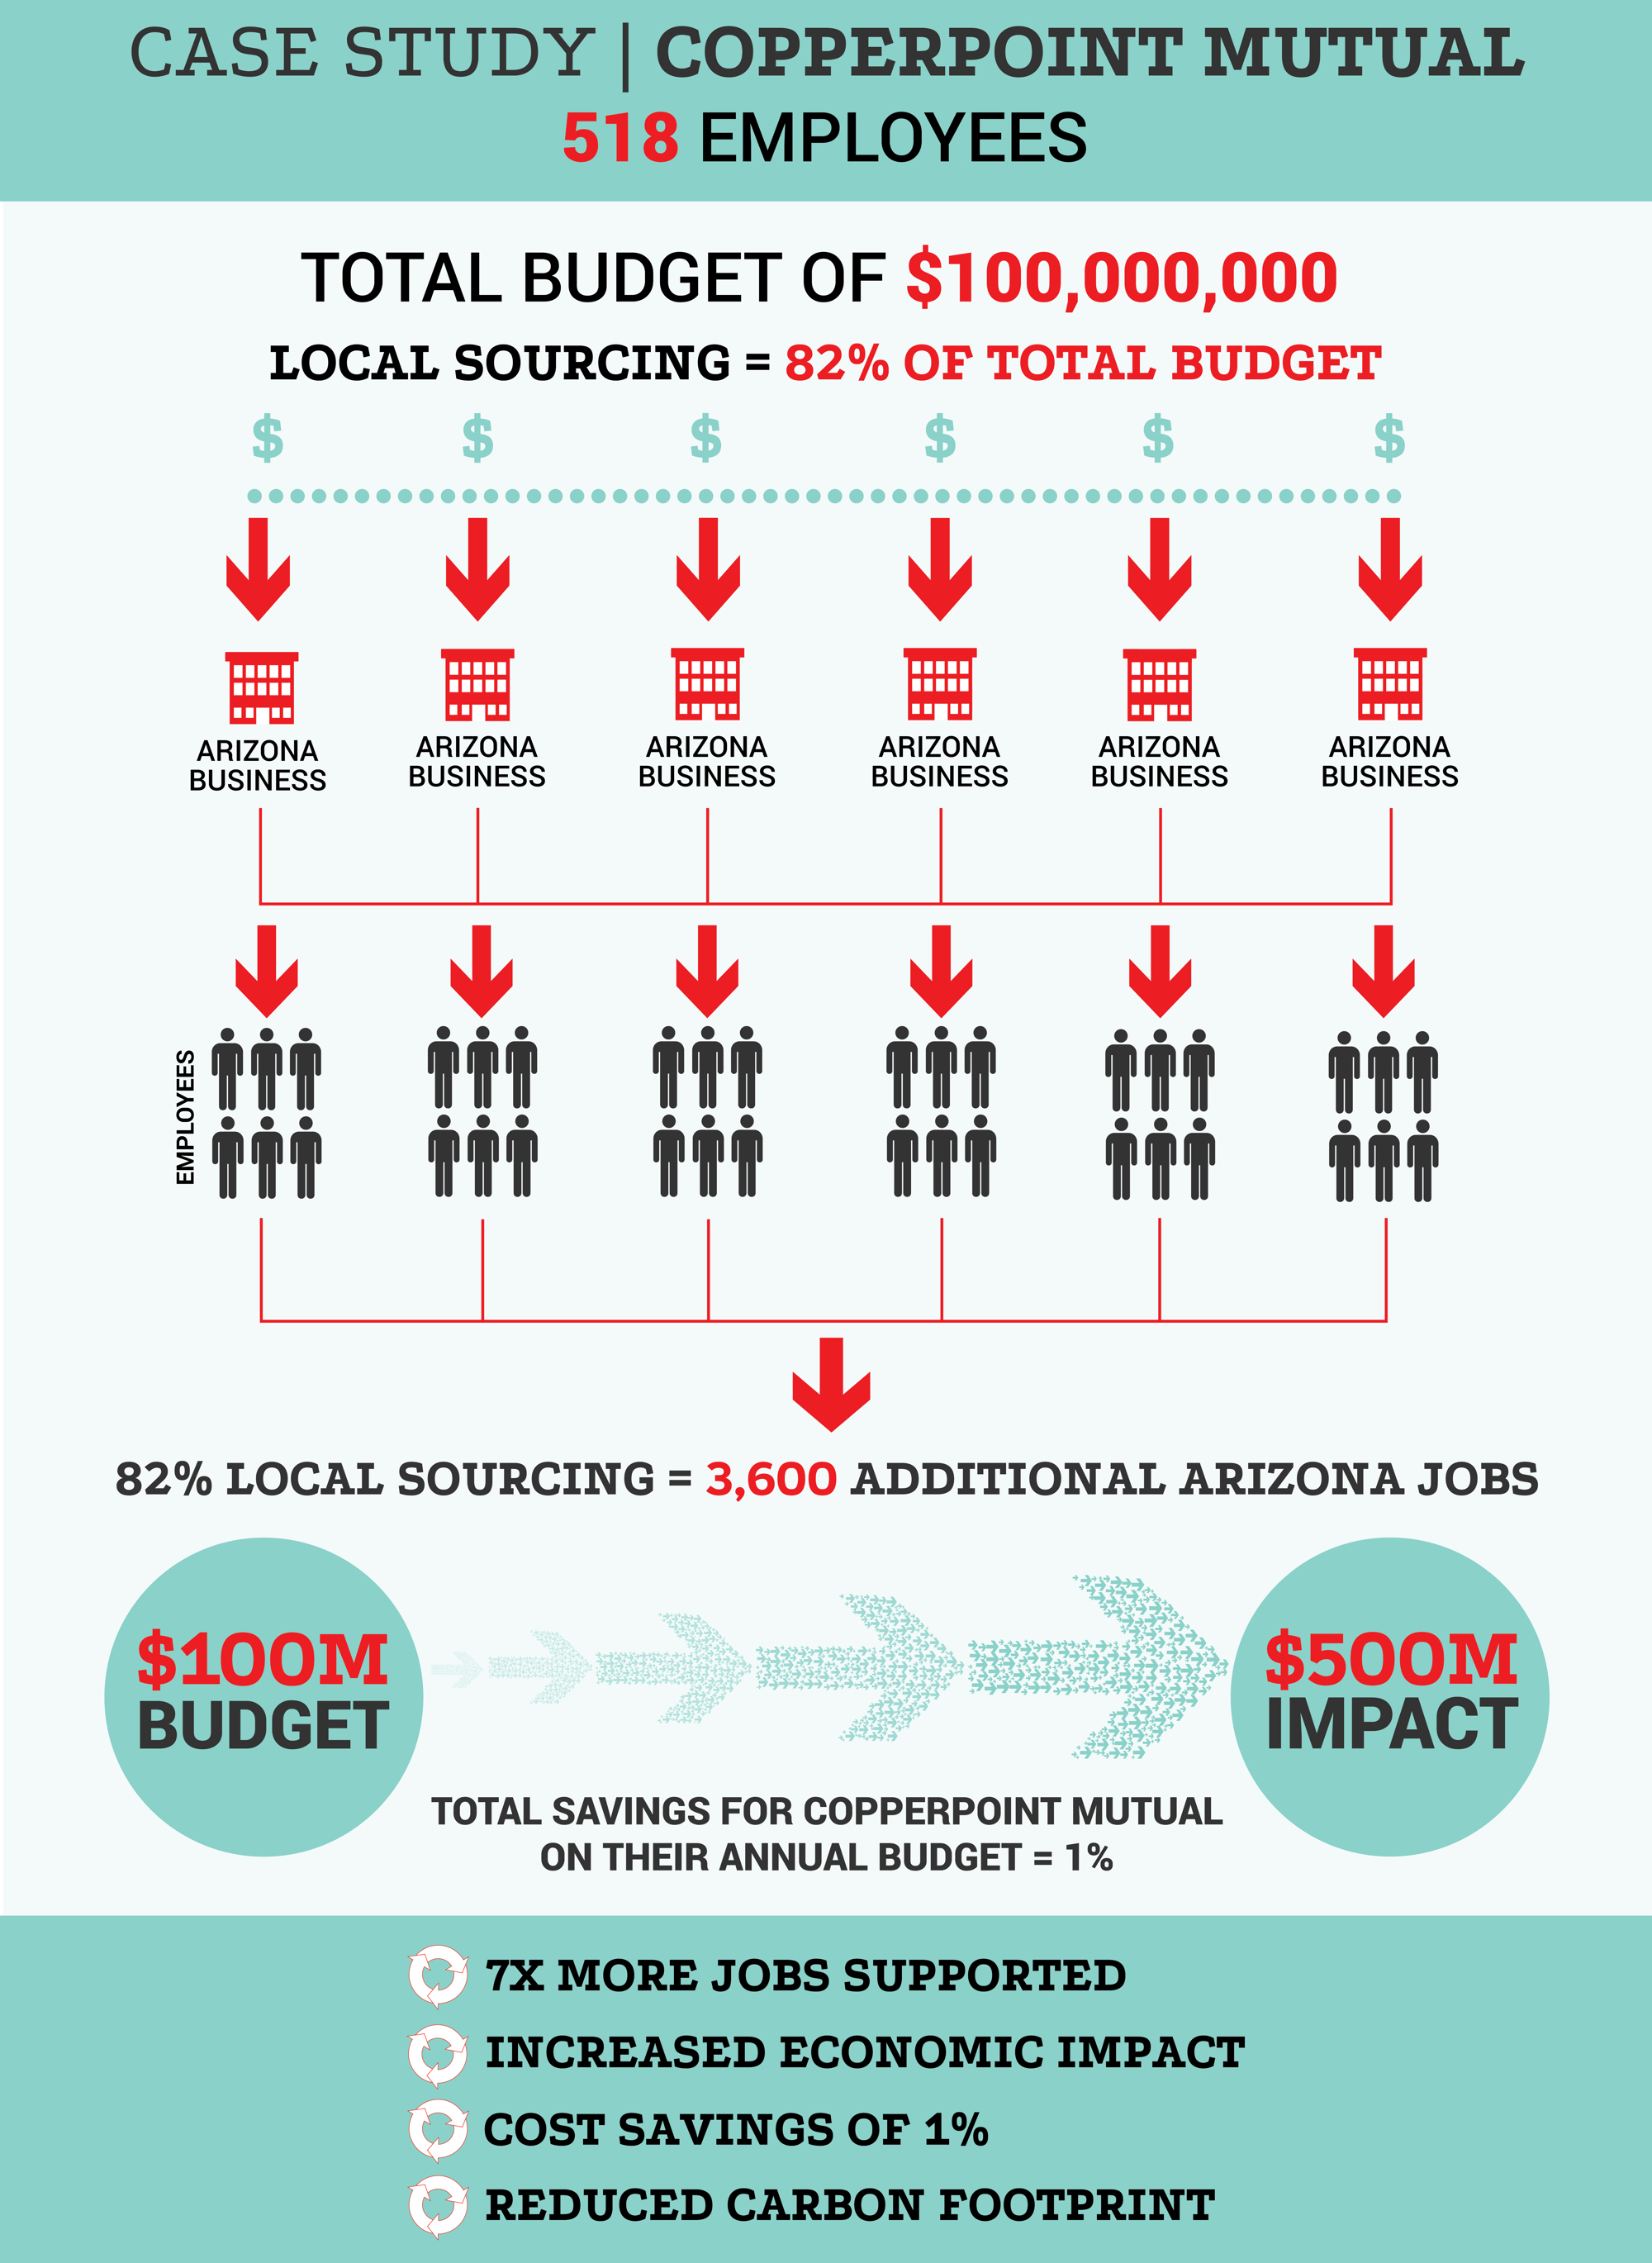 SourceAZ-CopperpointCaseStudy-Infographic2.jpg